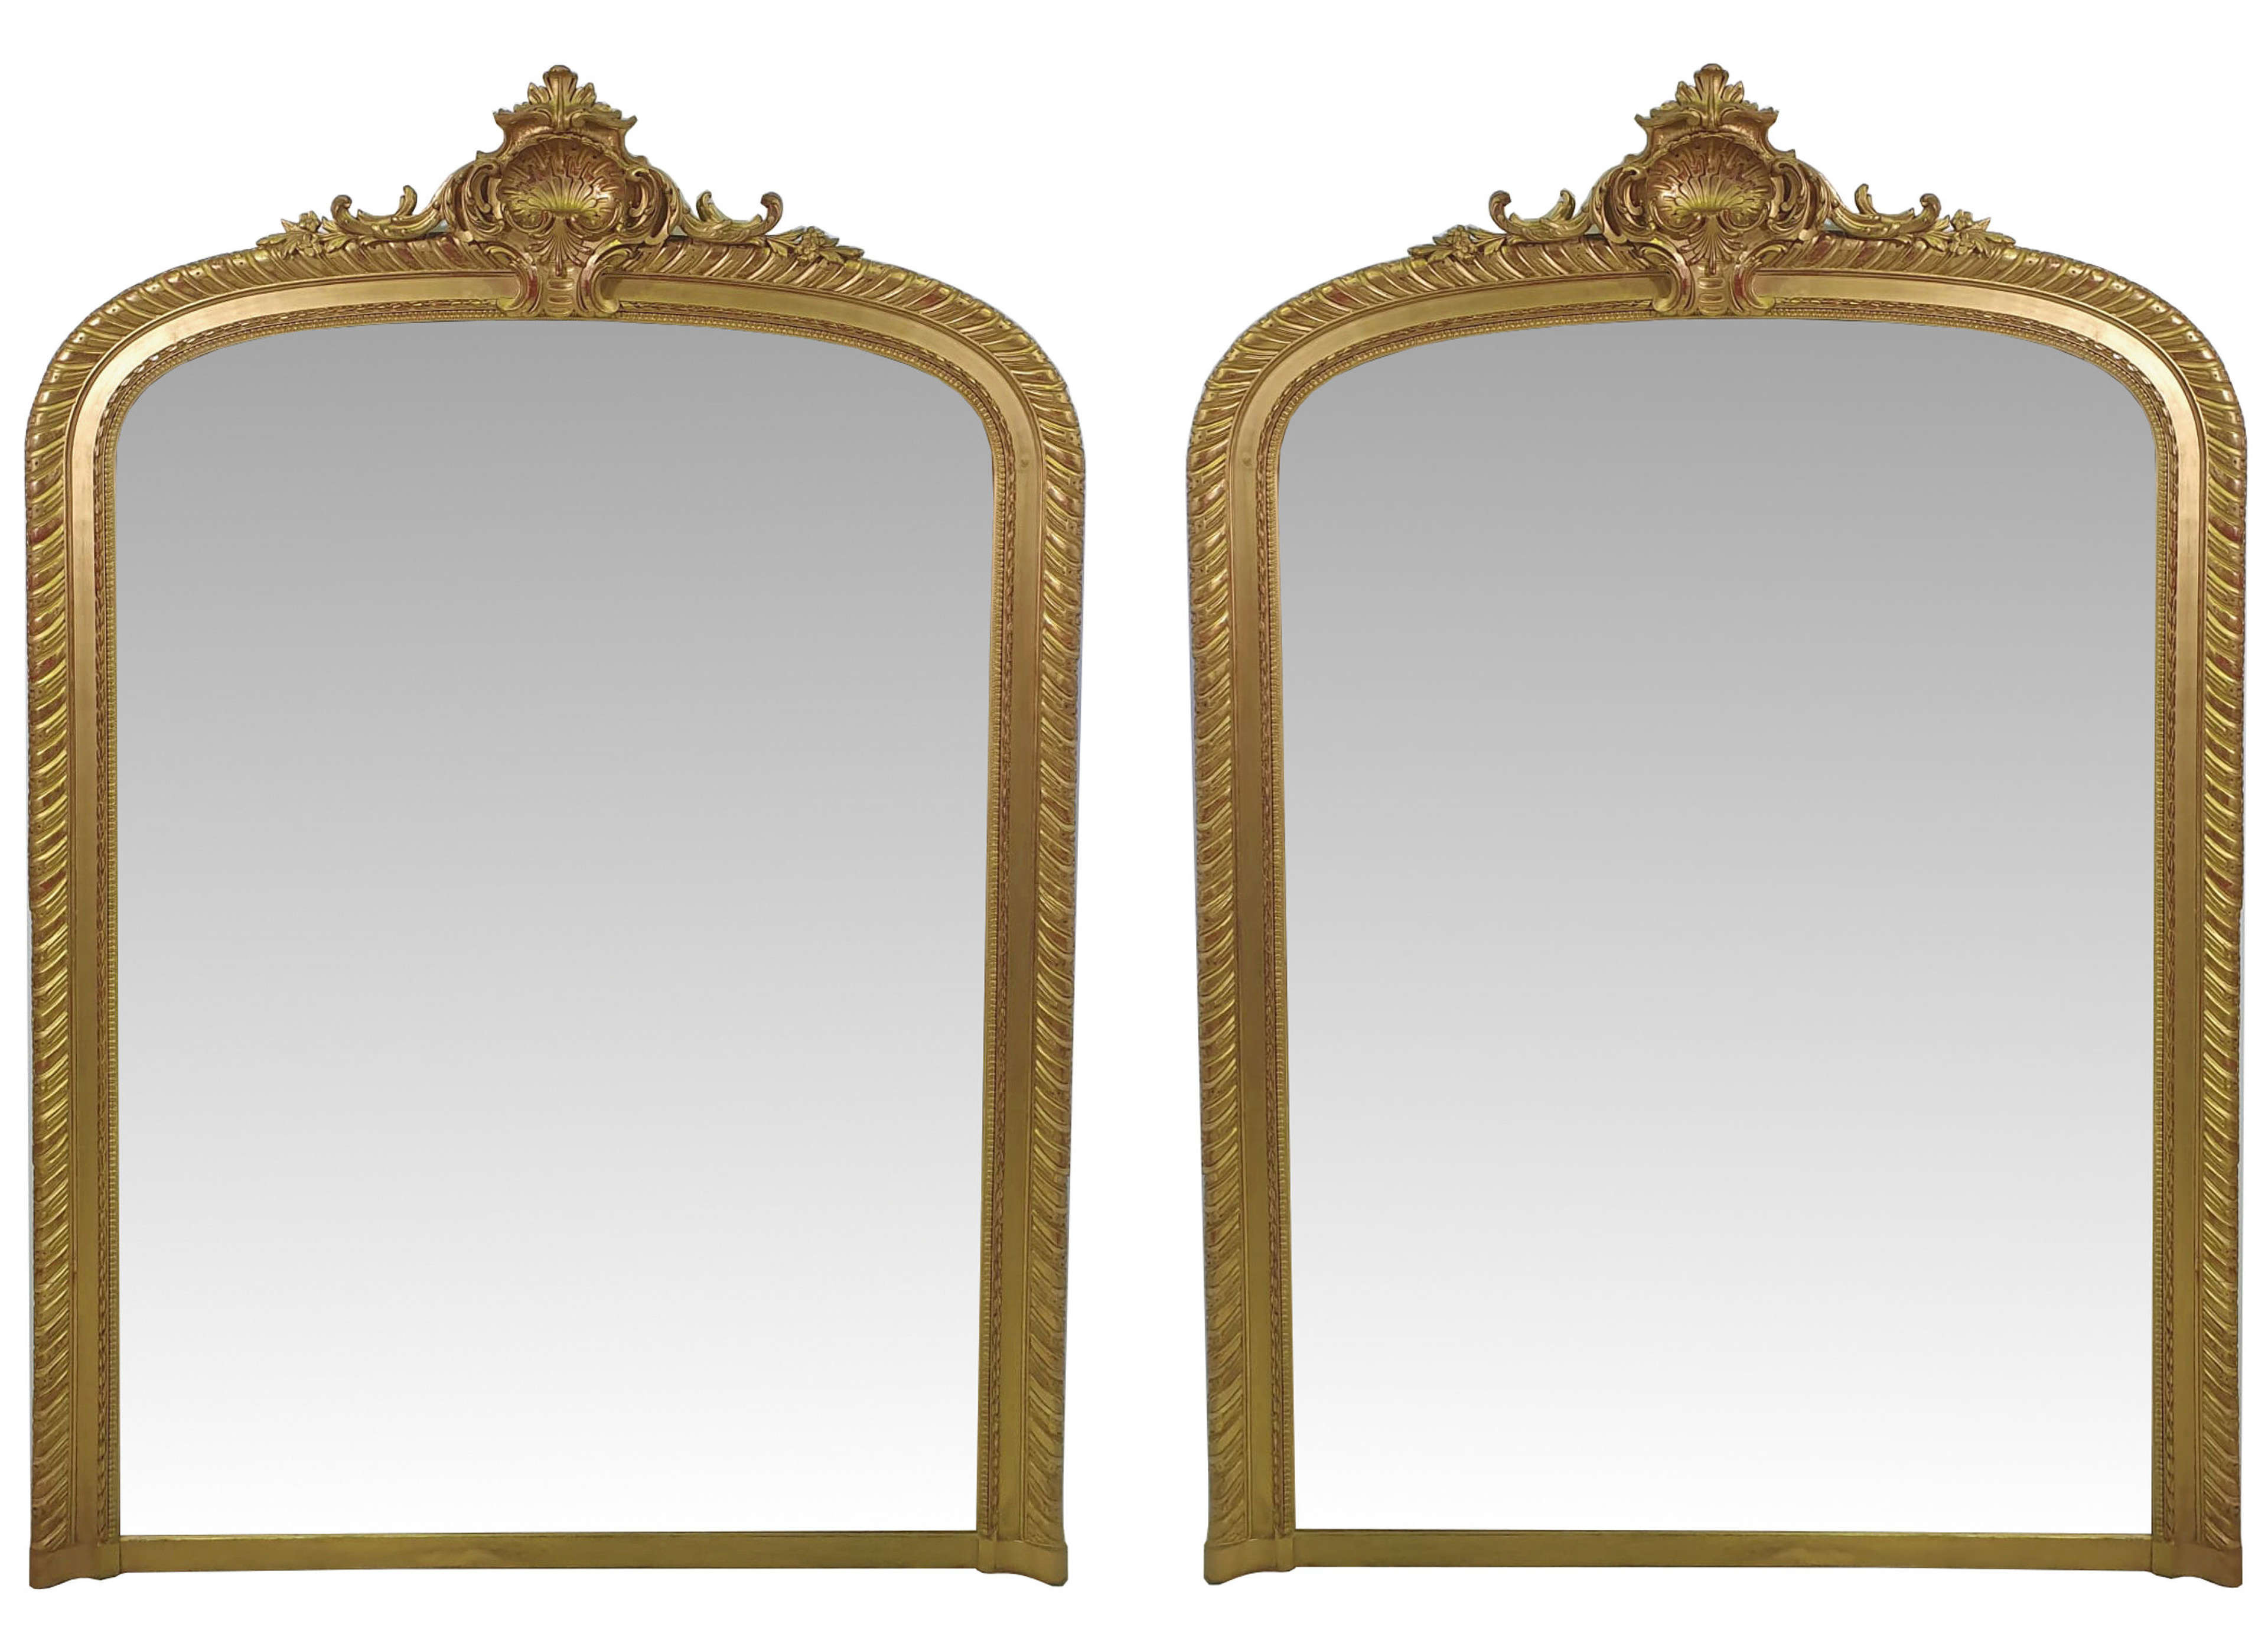 Very Rare Pair of 19th Century Large Gilt Overmantle Mirrors